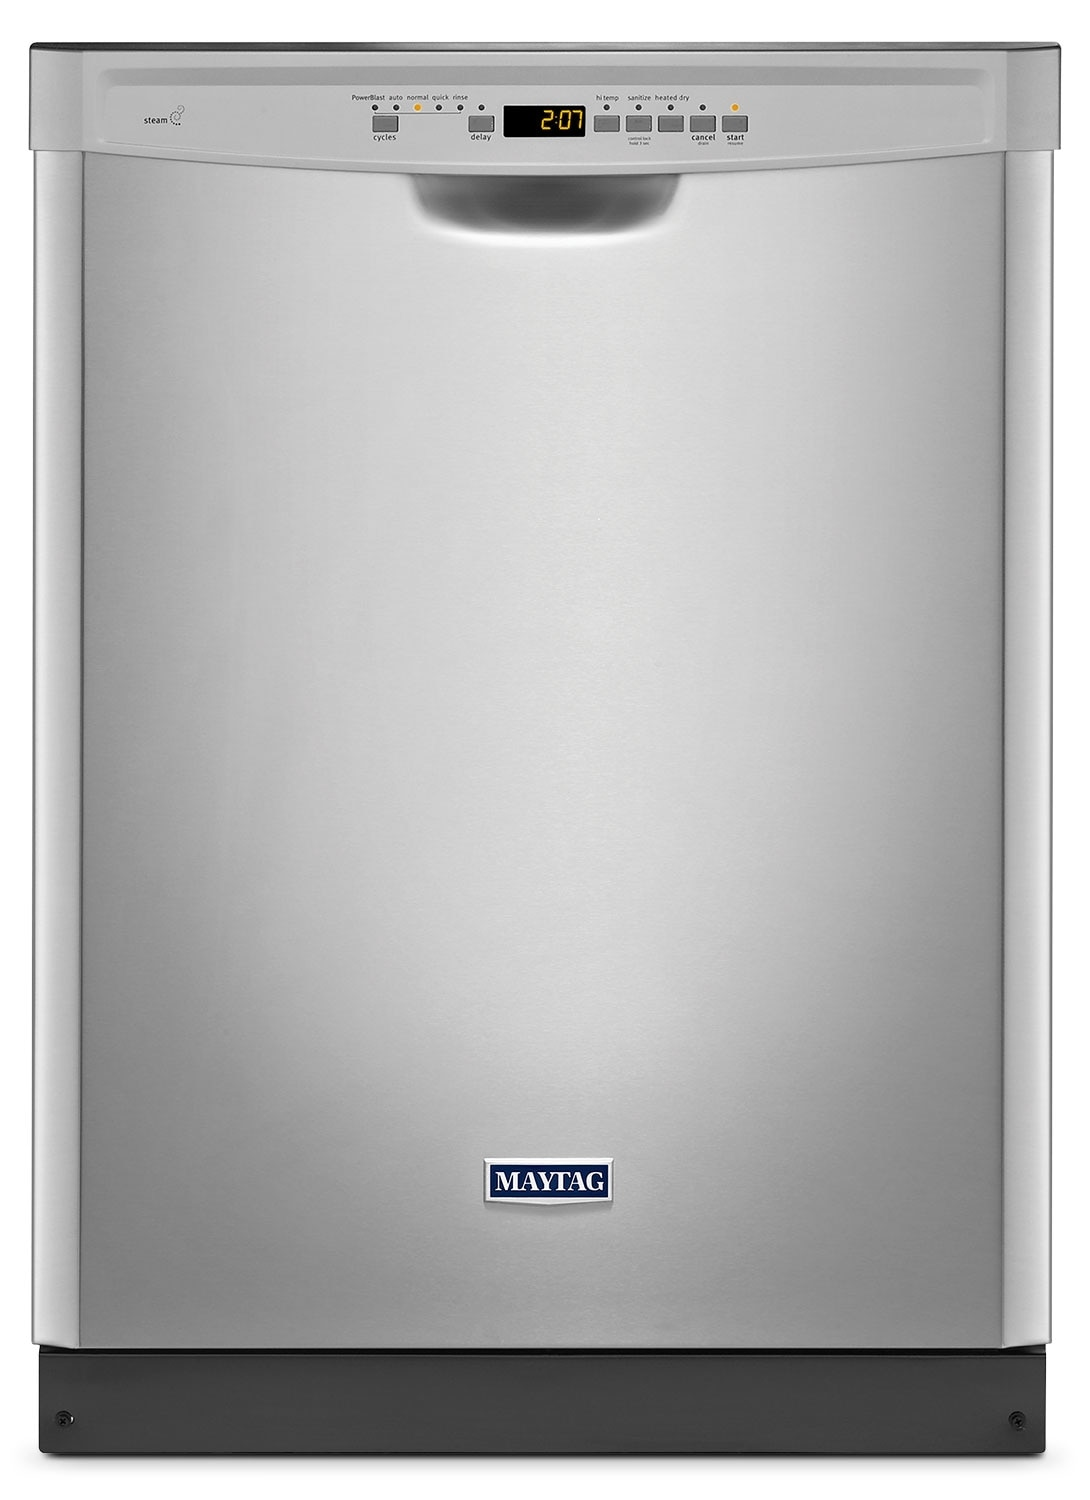 Clean-Up - Maytag® Large Capacity Built-In Dishwasher – Stainless Steel